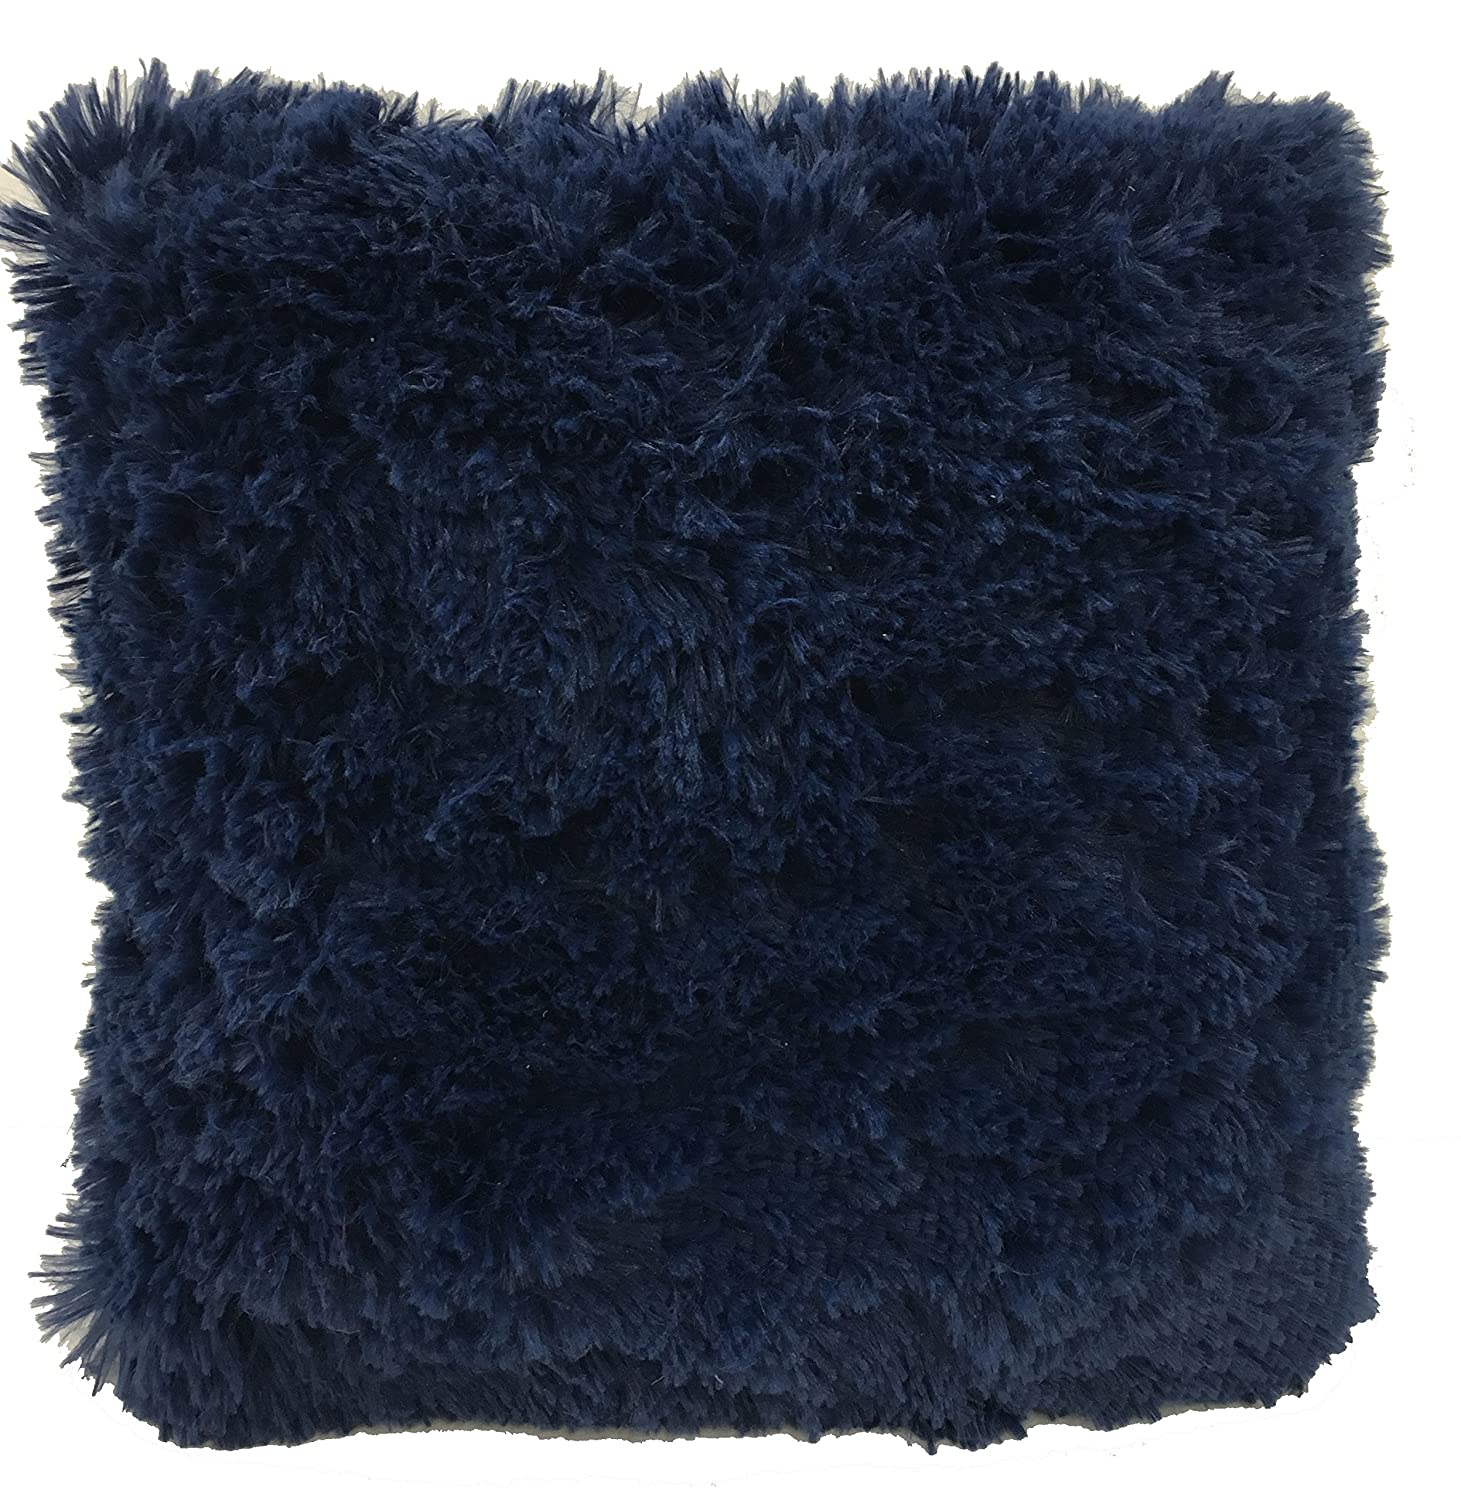 "LuxuryDiscounts Super Soft Faux Fur Decorative Filled Throw Pillow Cushion Available in Multiple Colors (16"" x 16"", Navy Blue)"